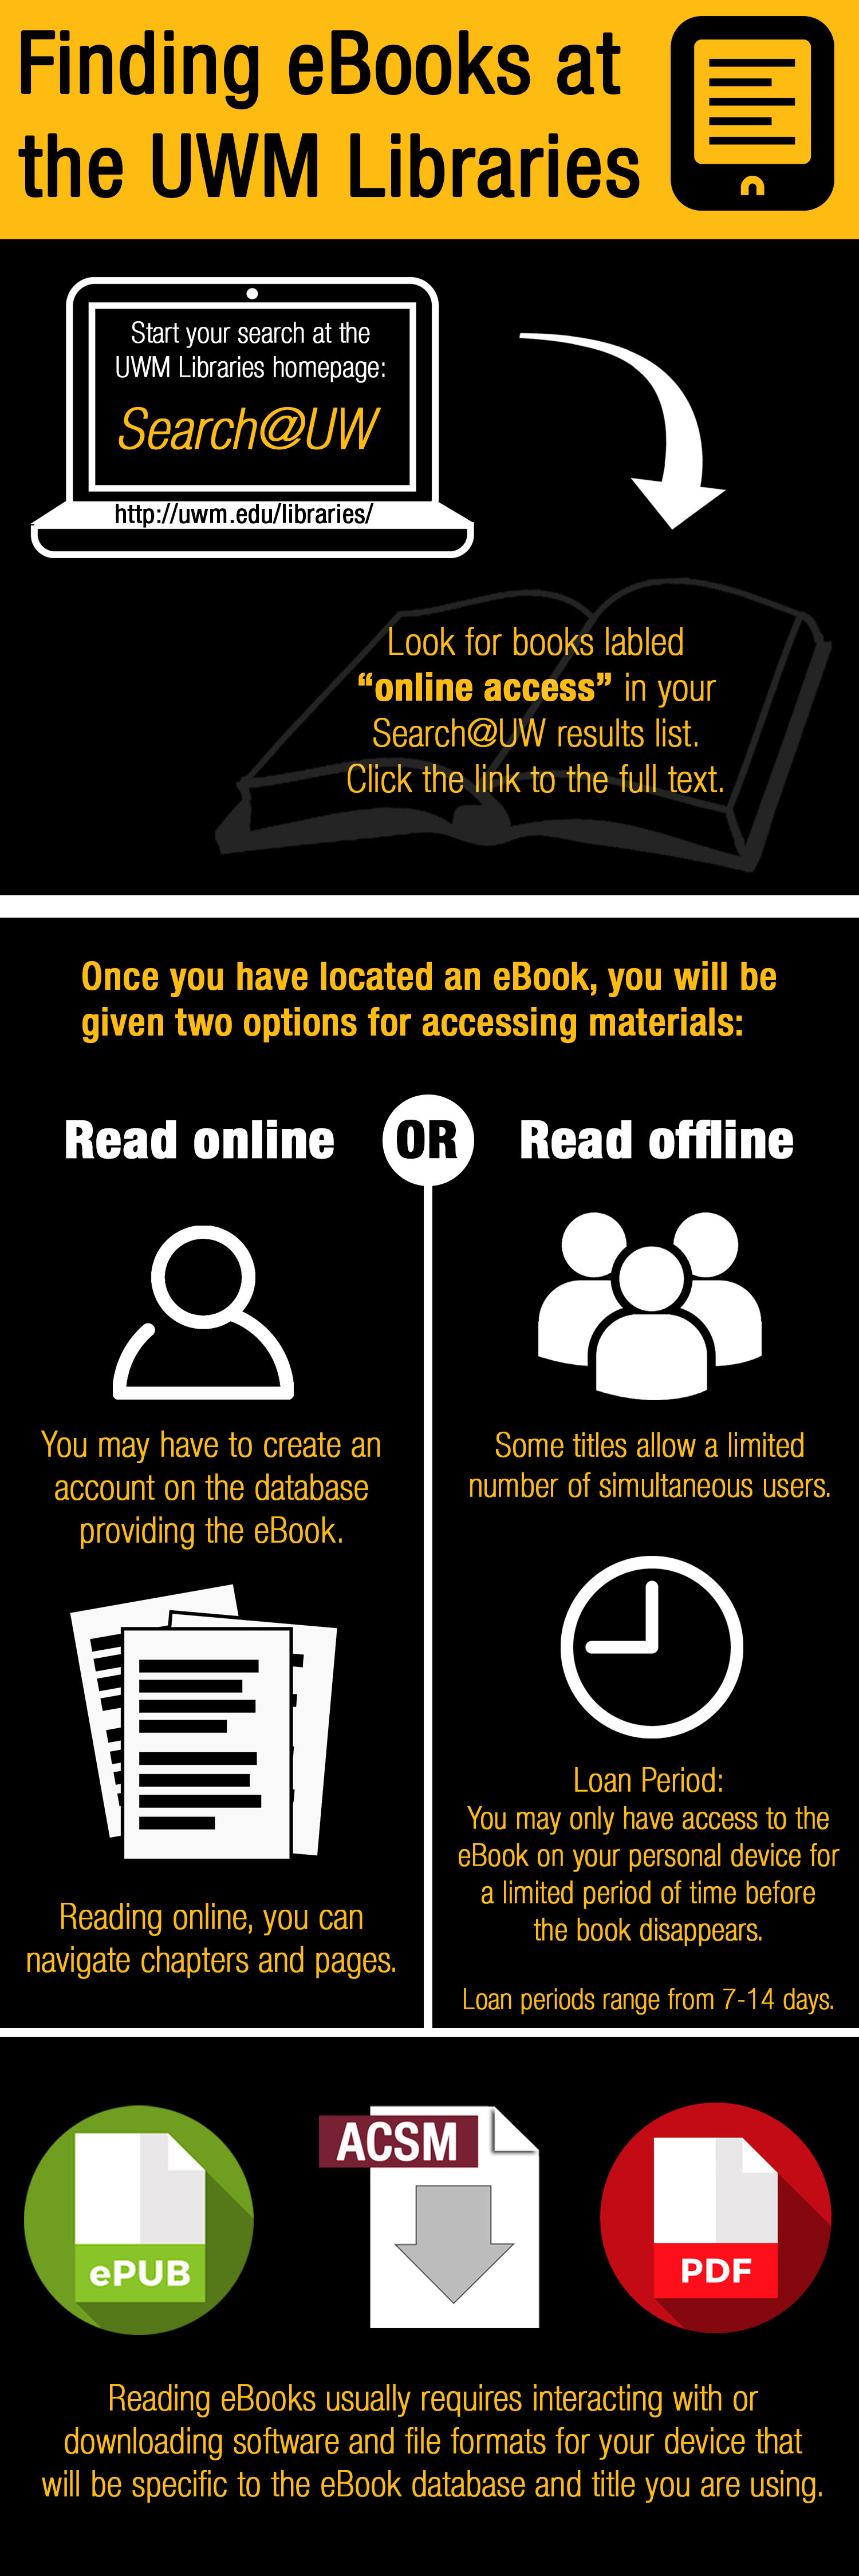 Infographic explaining how to find eBooks at the UWM Libraries. Alt text document available below.